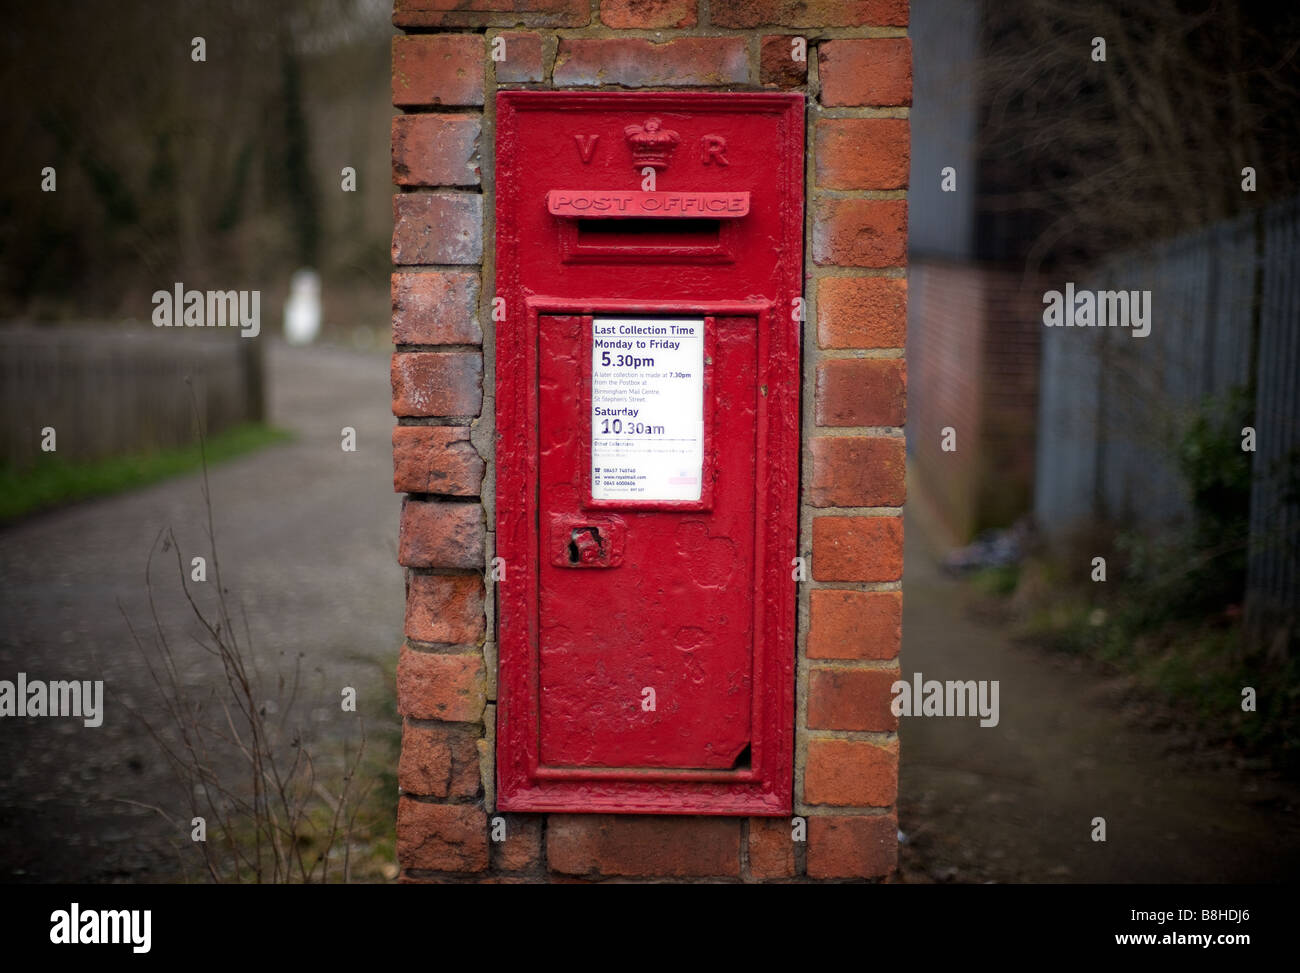 A Royal Mail post box in a rural setting Worcestershire England UK Stock Photo